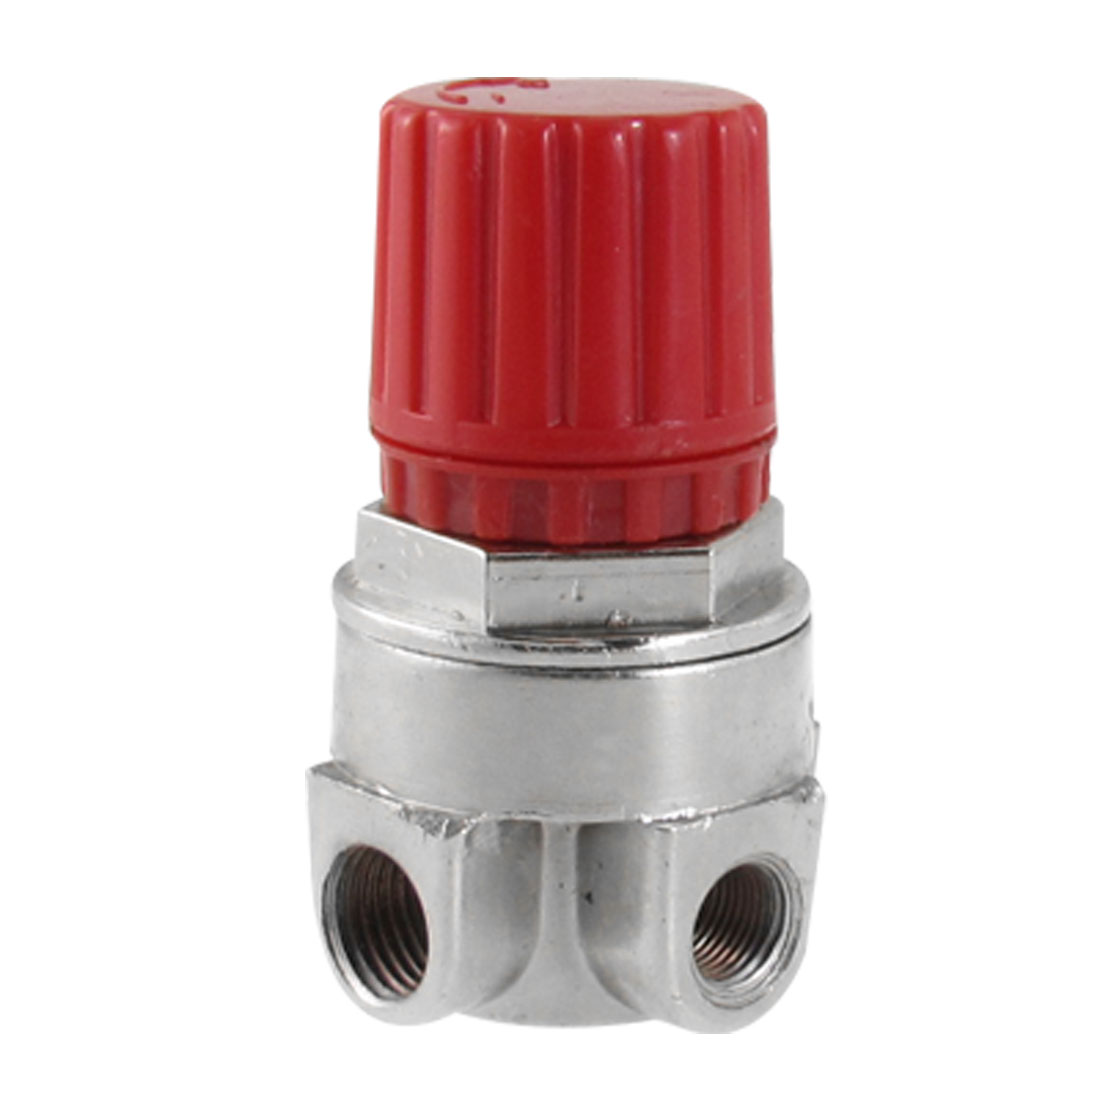 "29/64"" 1/3"" Thread Compressor Pressure Regulating Valve"